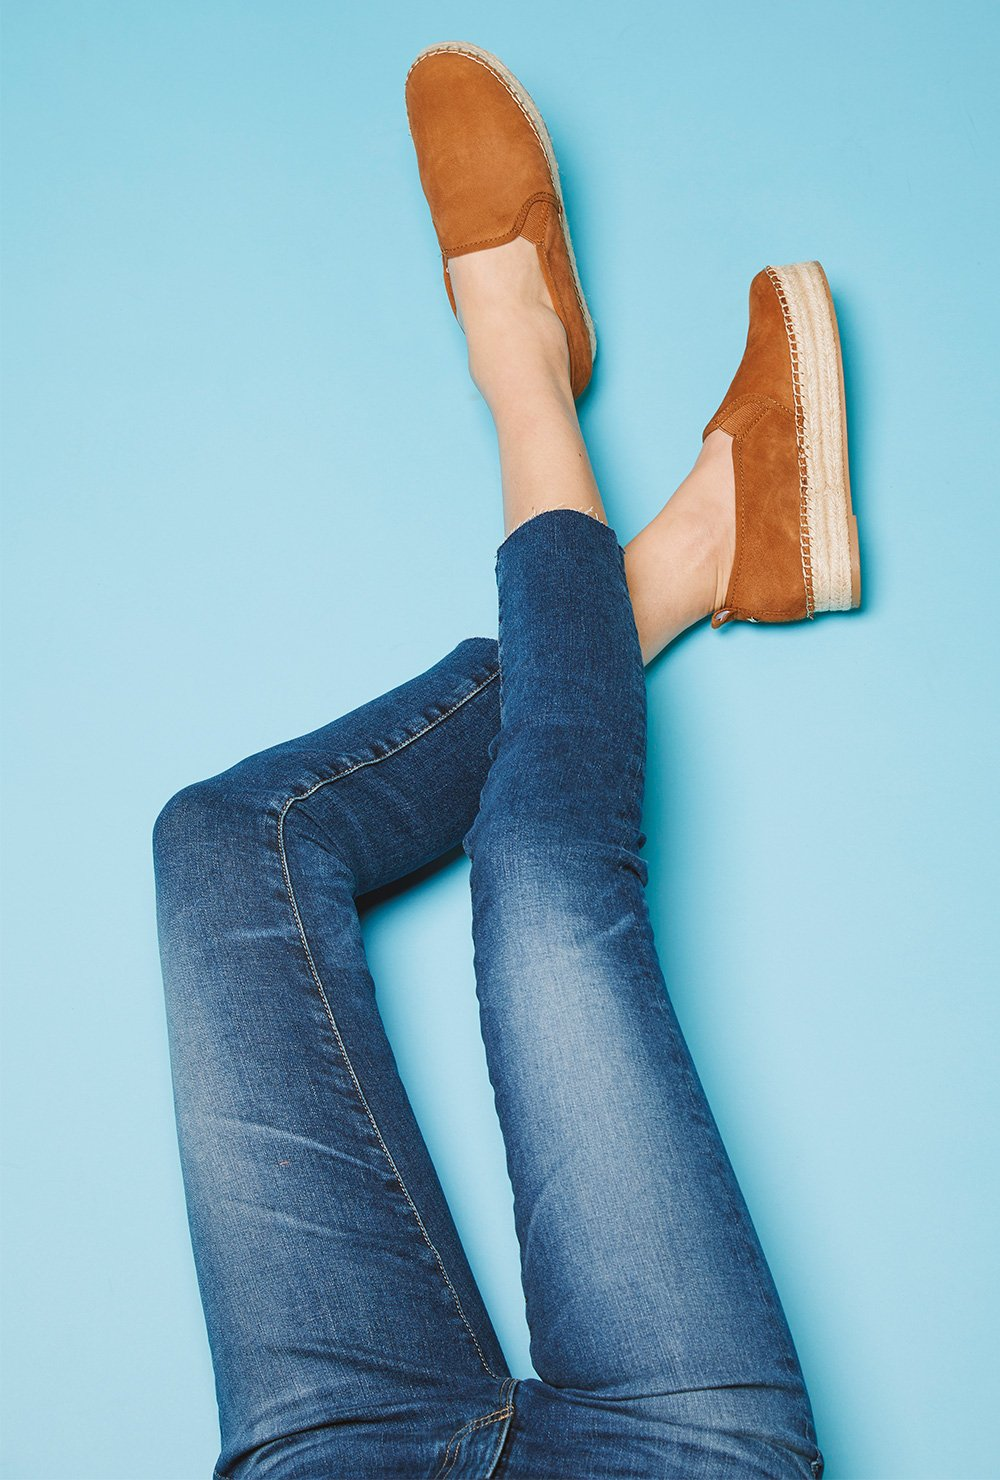 image links to assortment of espadrilles